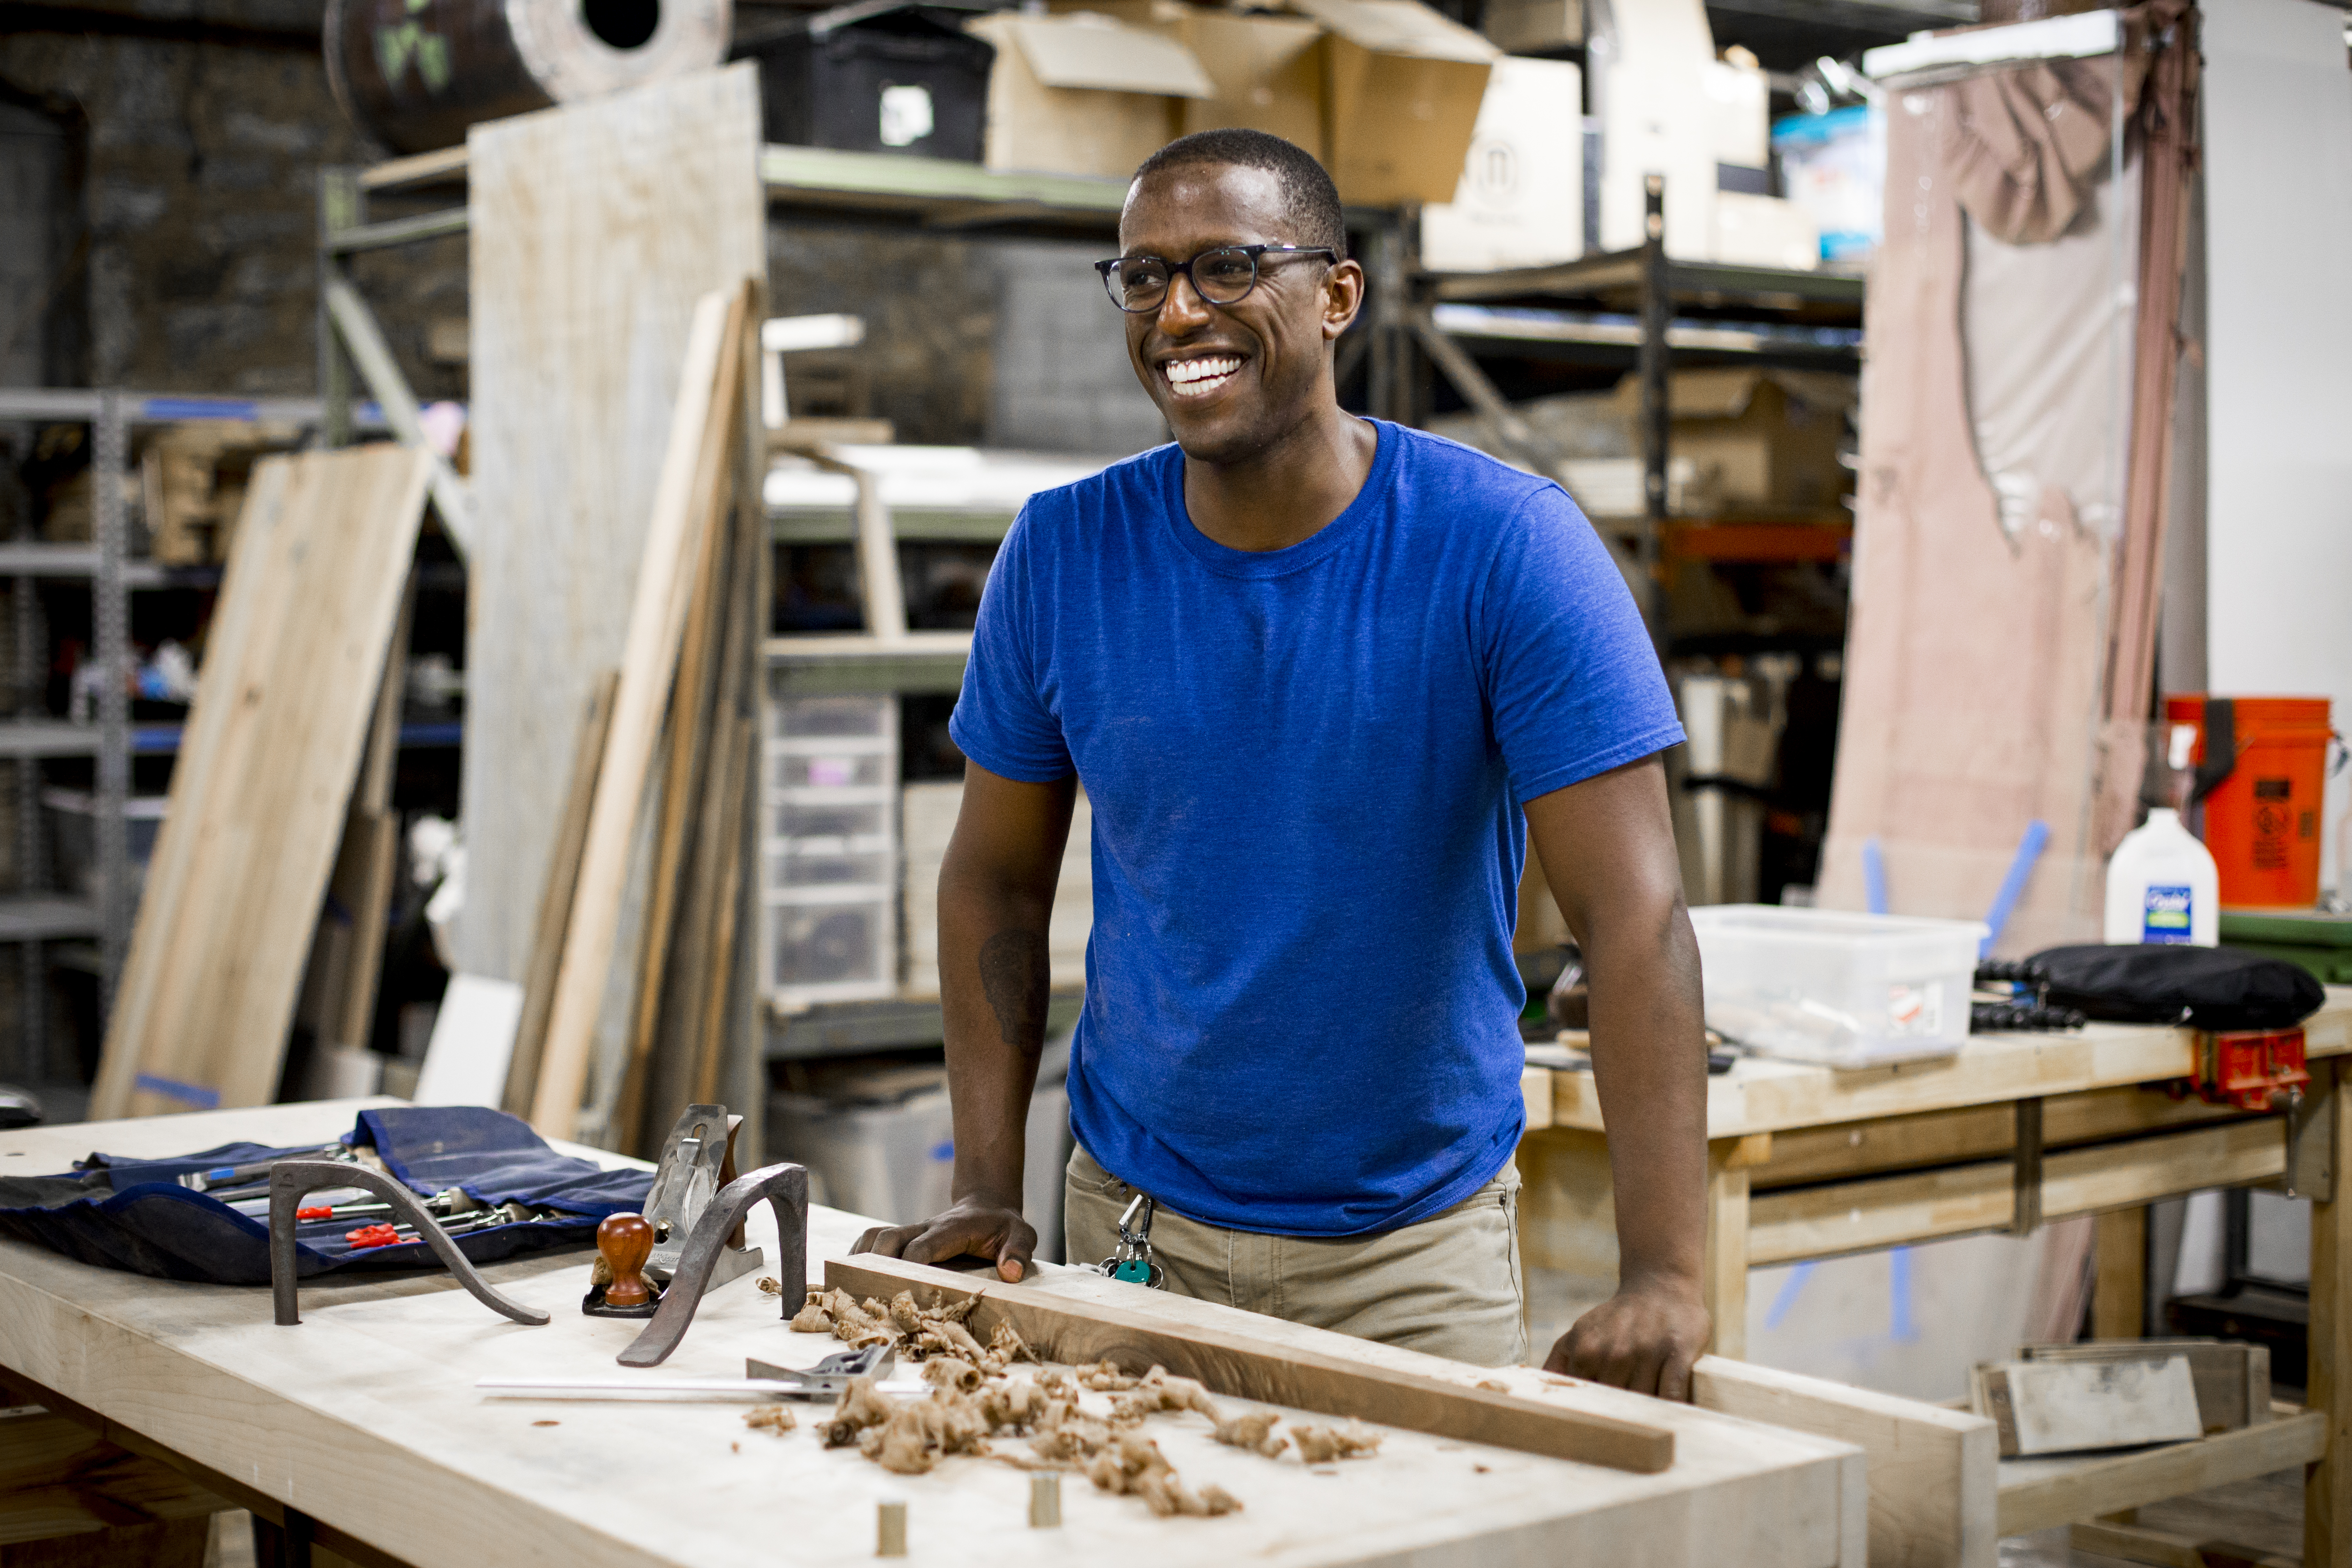 Robell smiling and standing at a workbench. On the bench is a table leg and wood shavings.